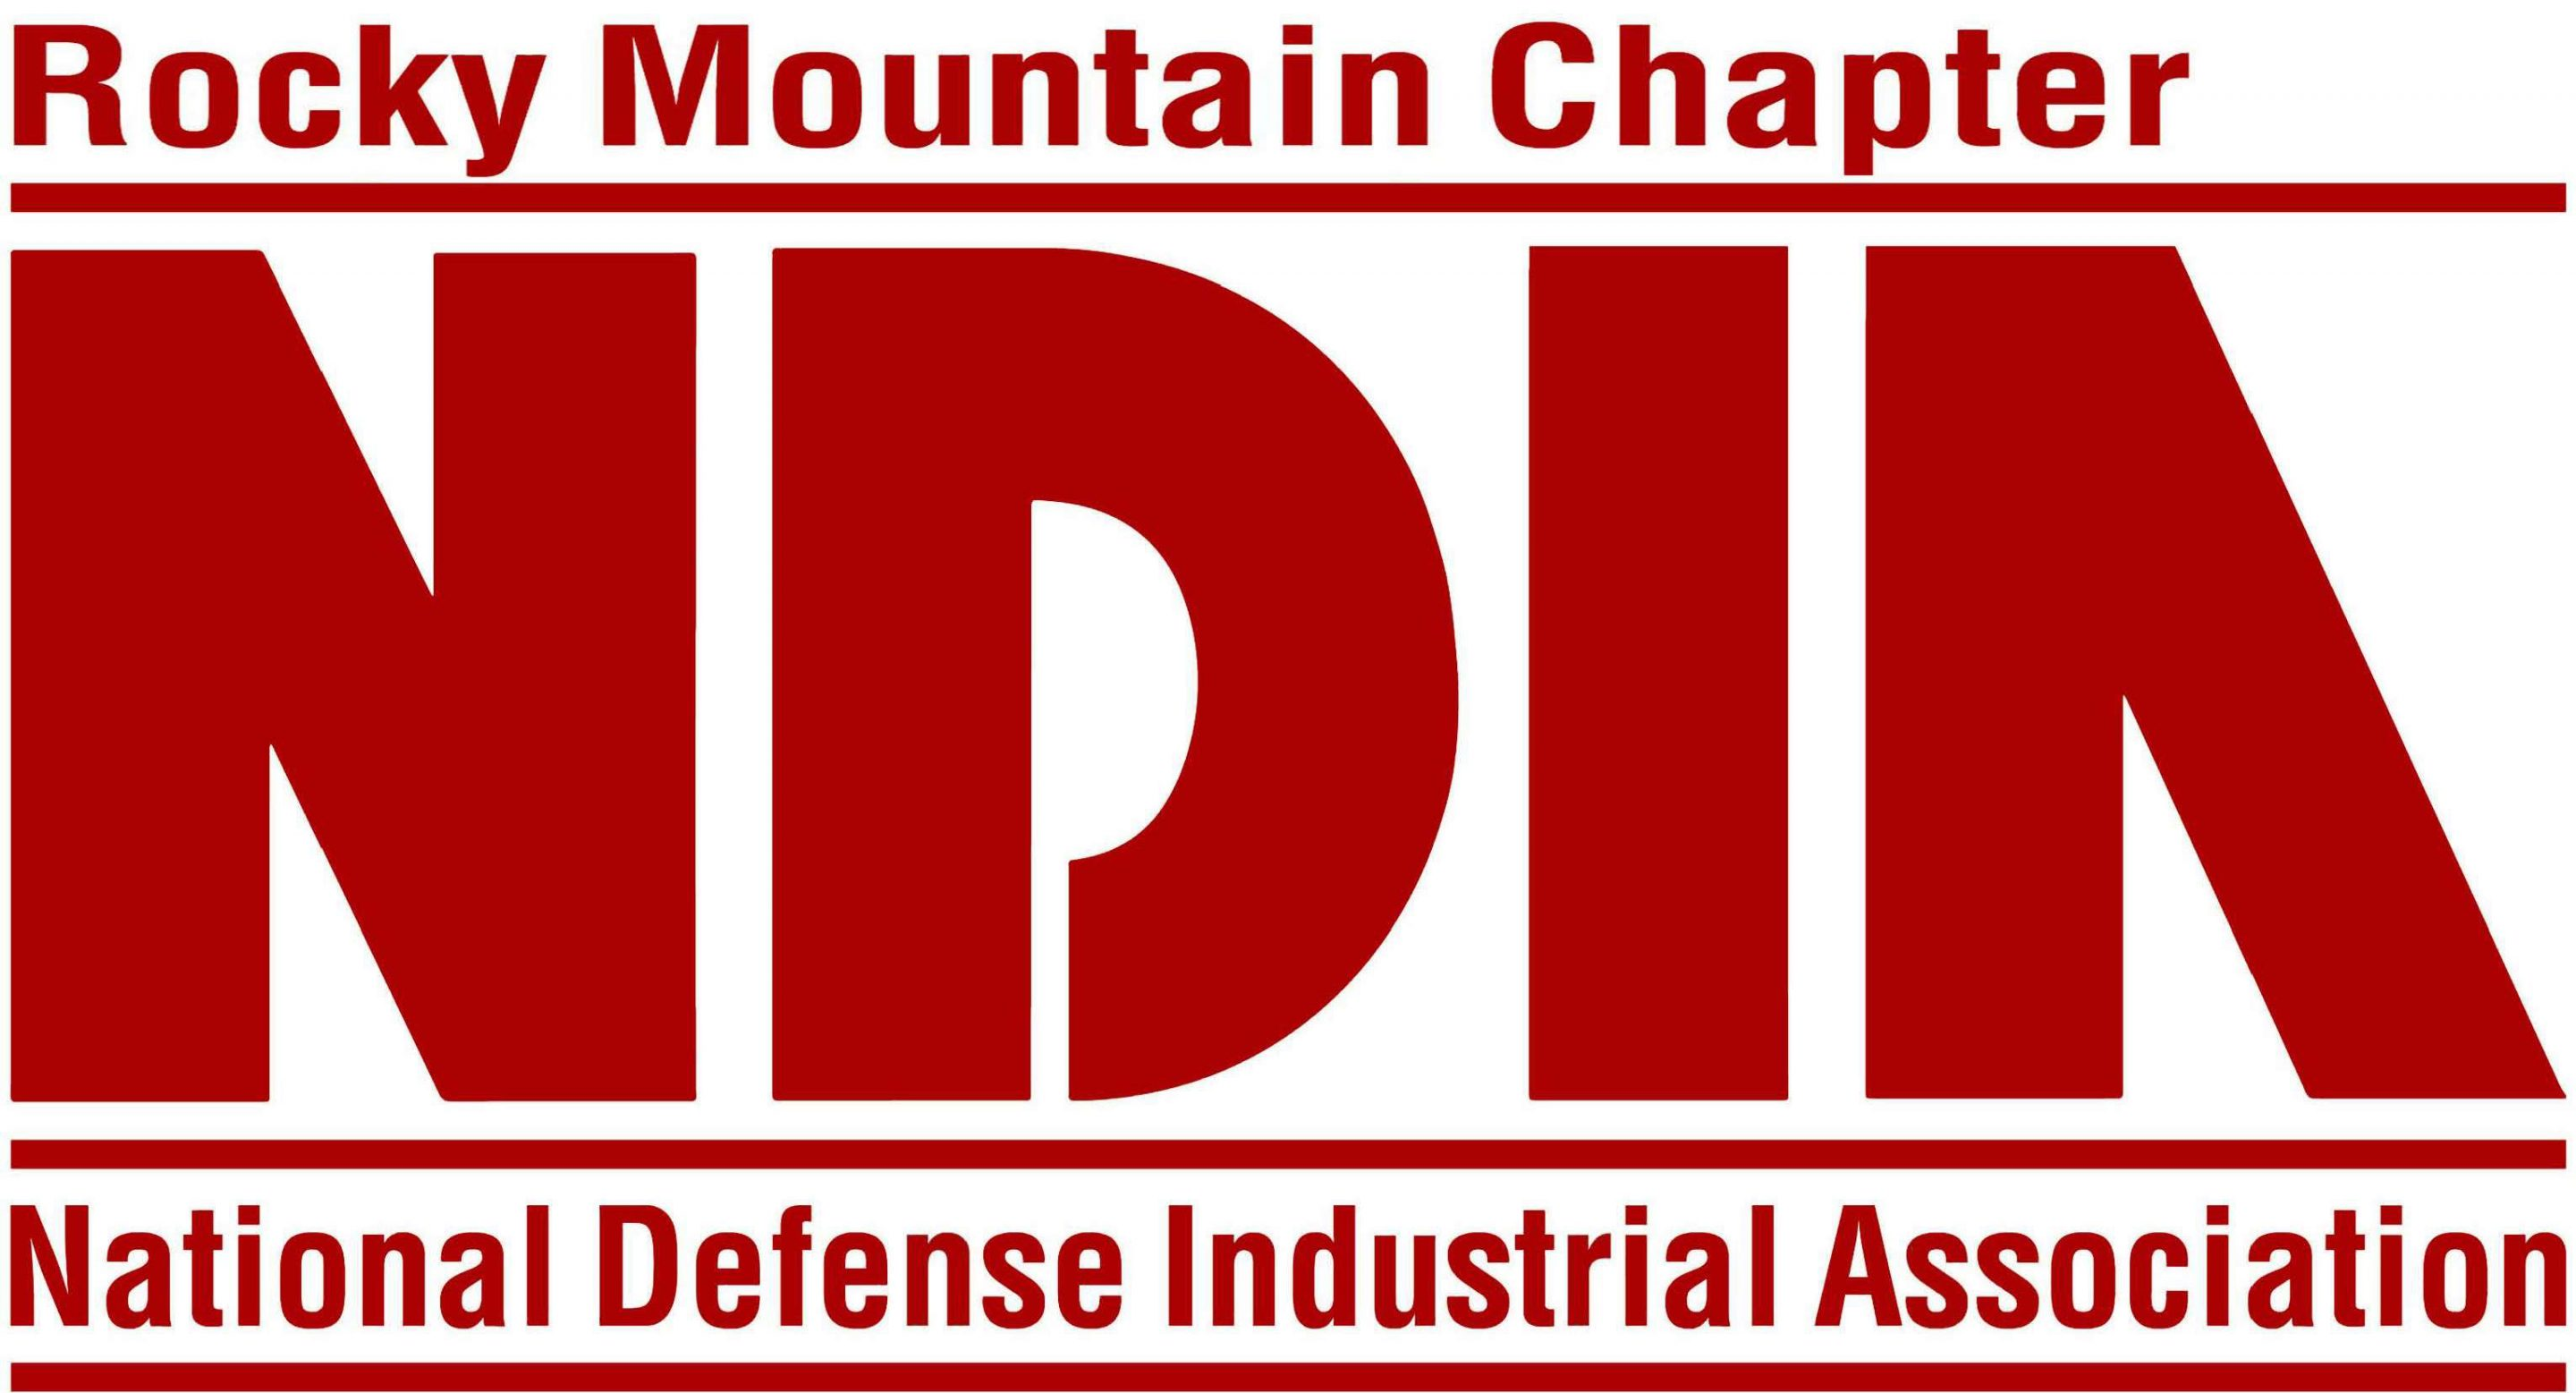 National Defense Industrial Association (NDIA)